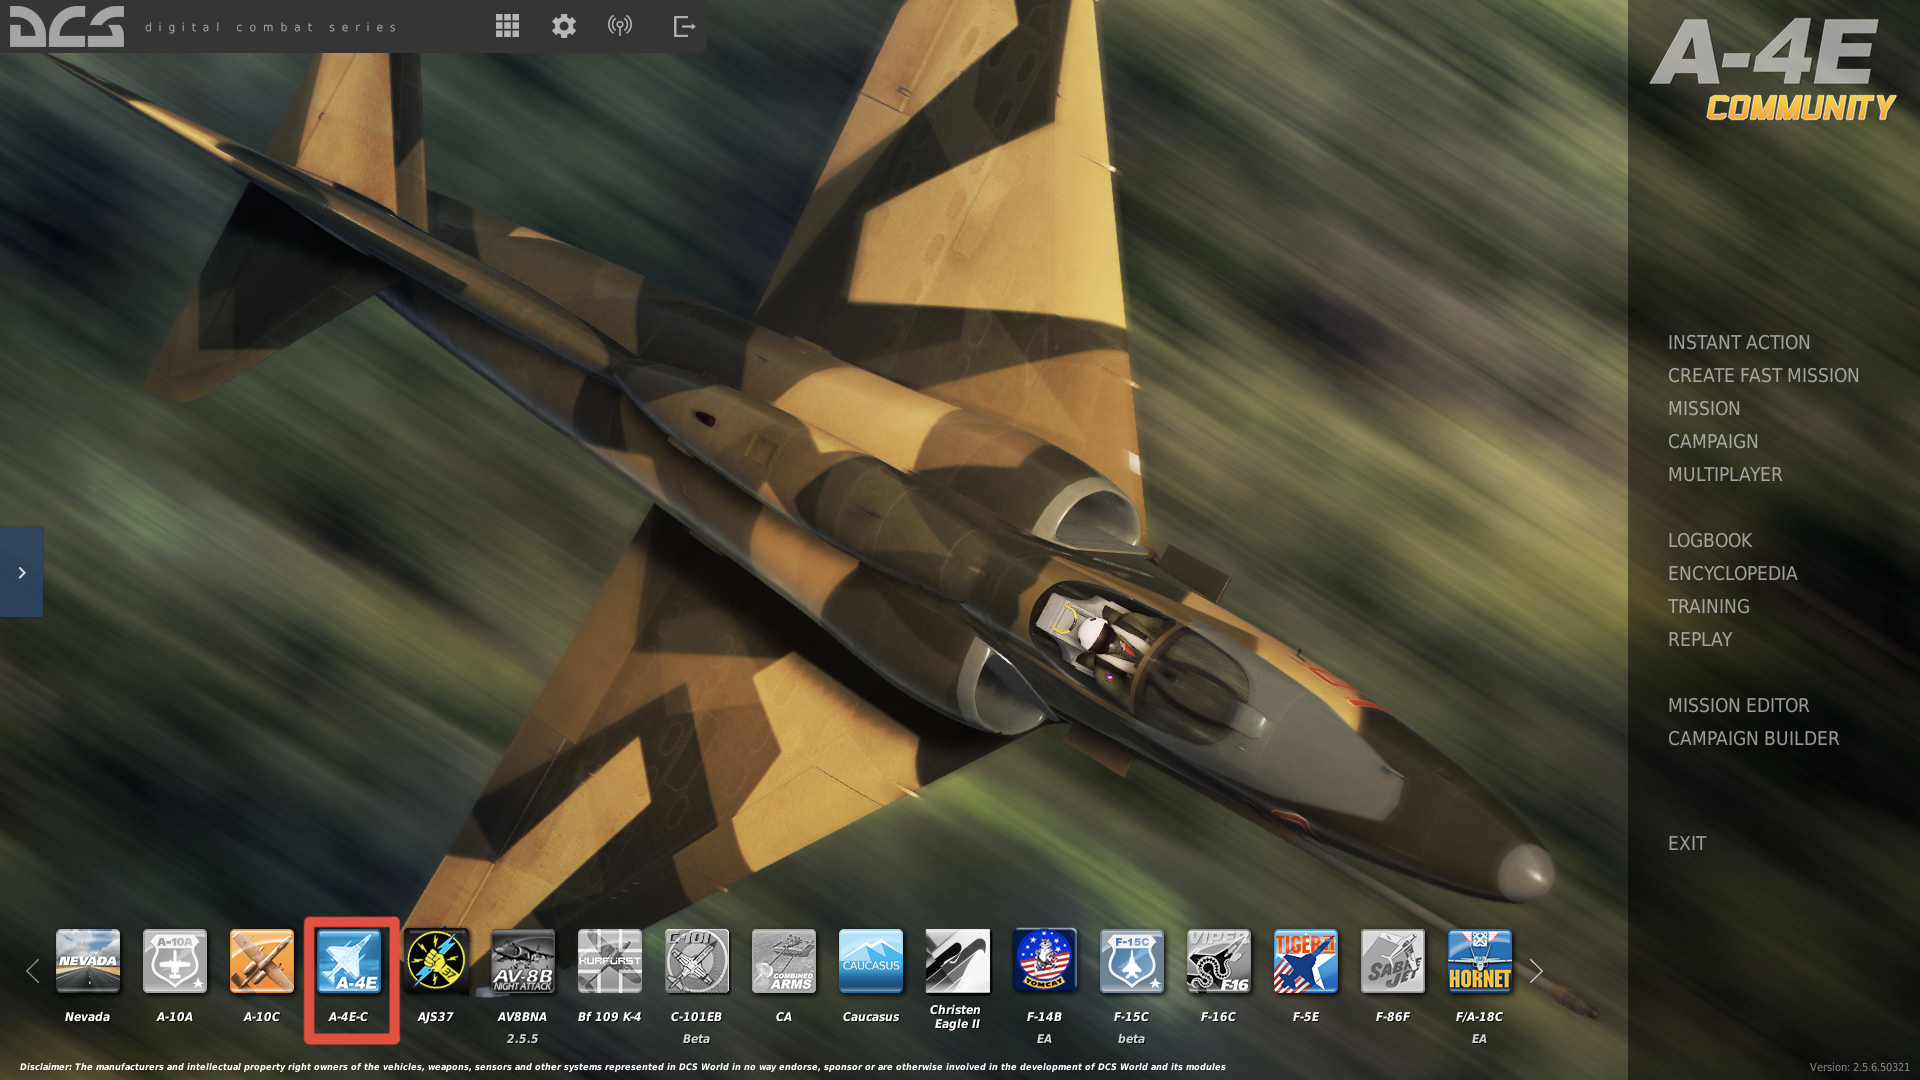 Image of DCS World Menu with A-4E installed